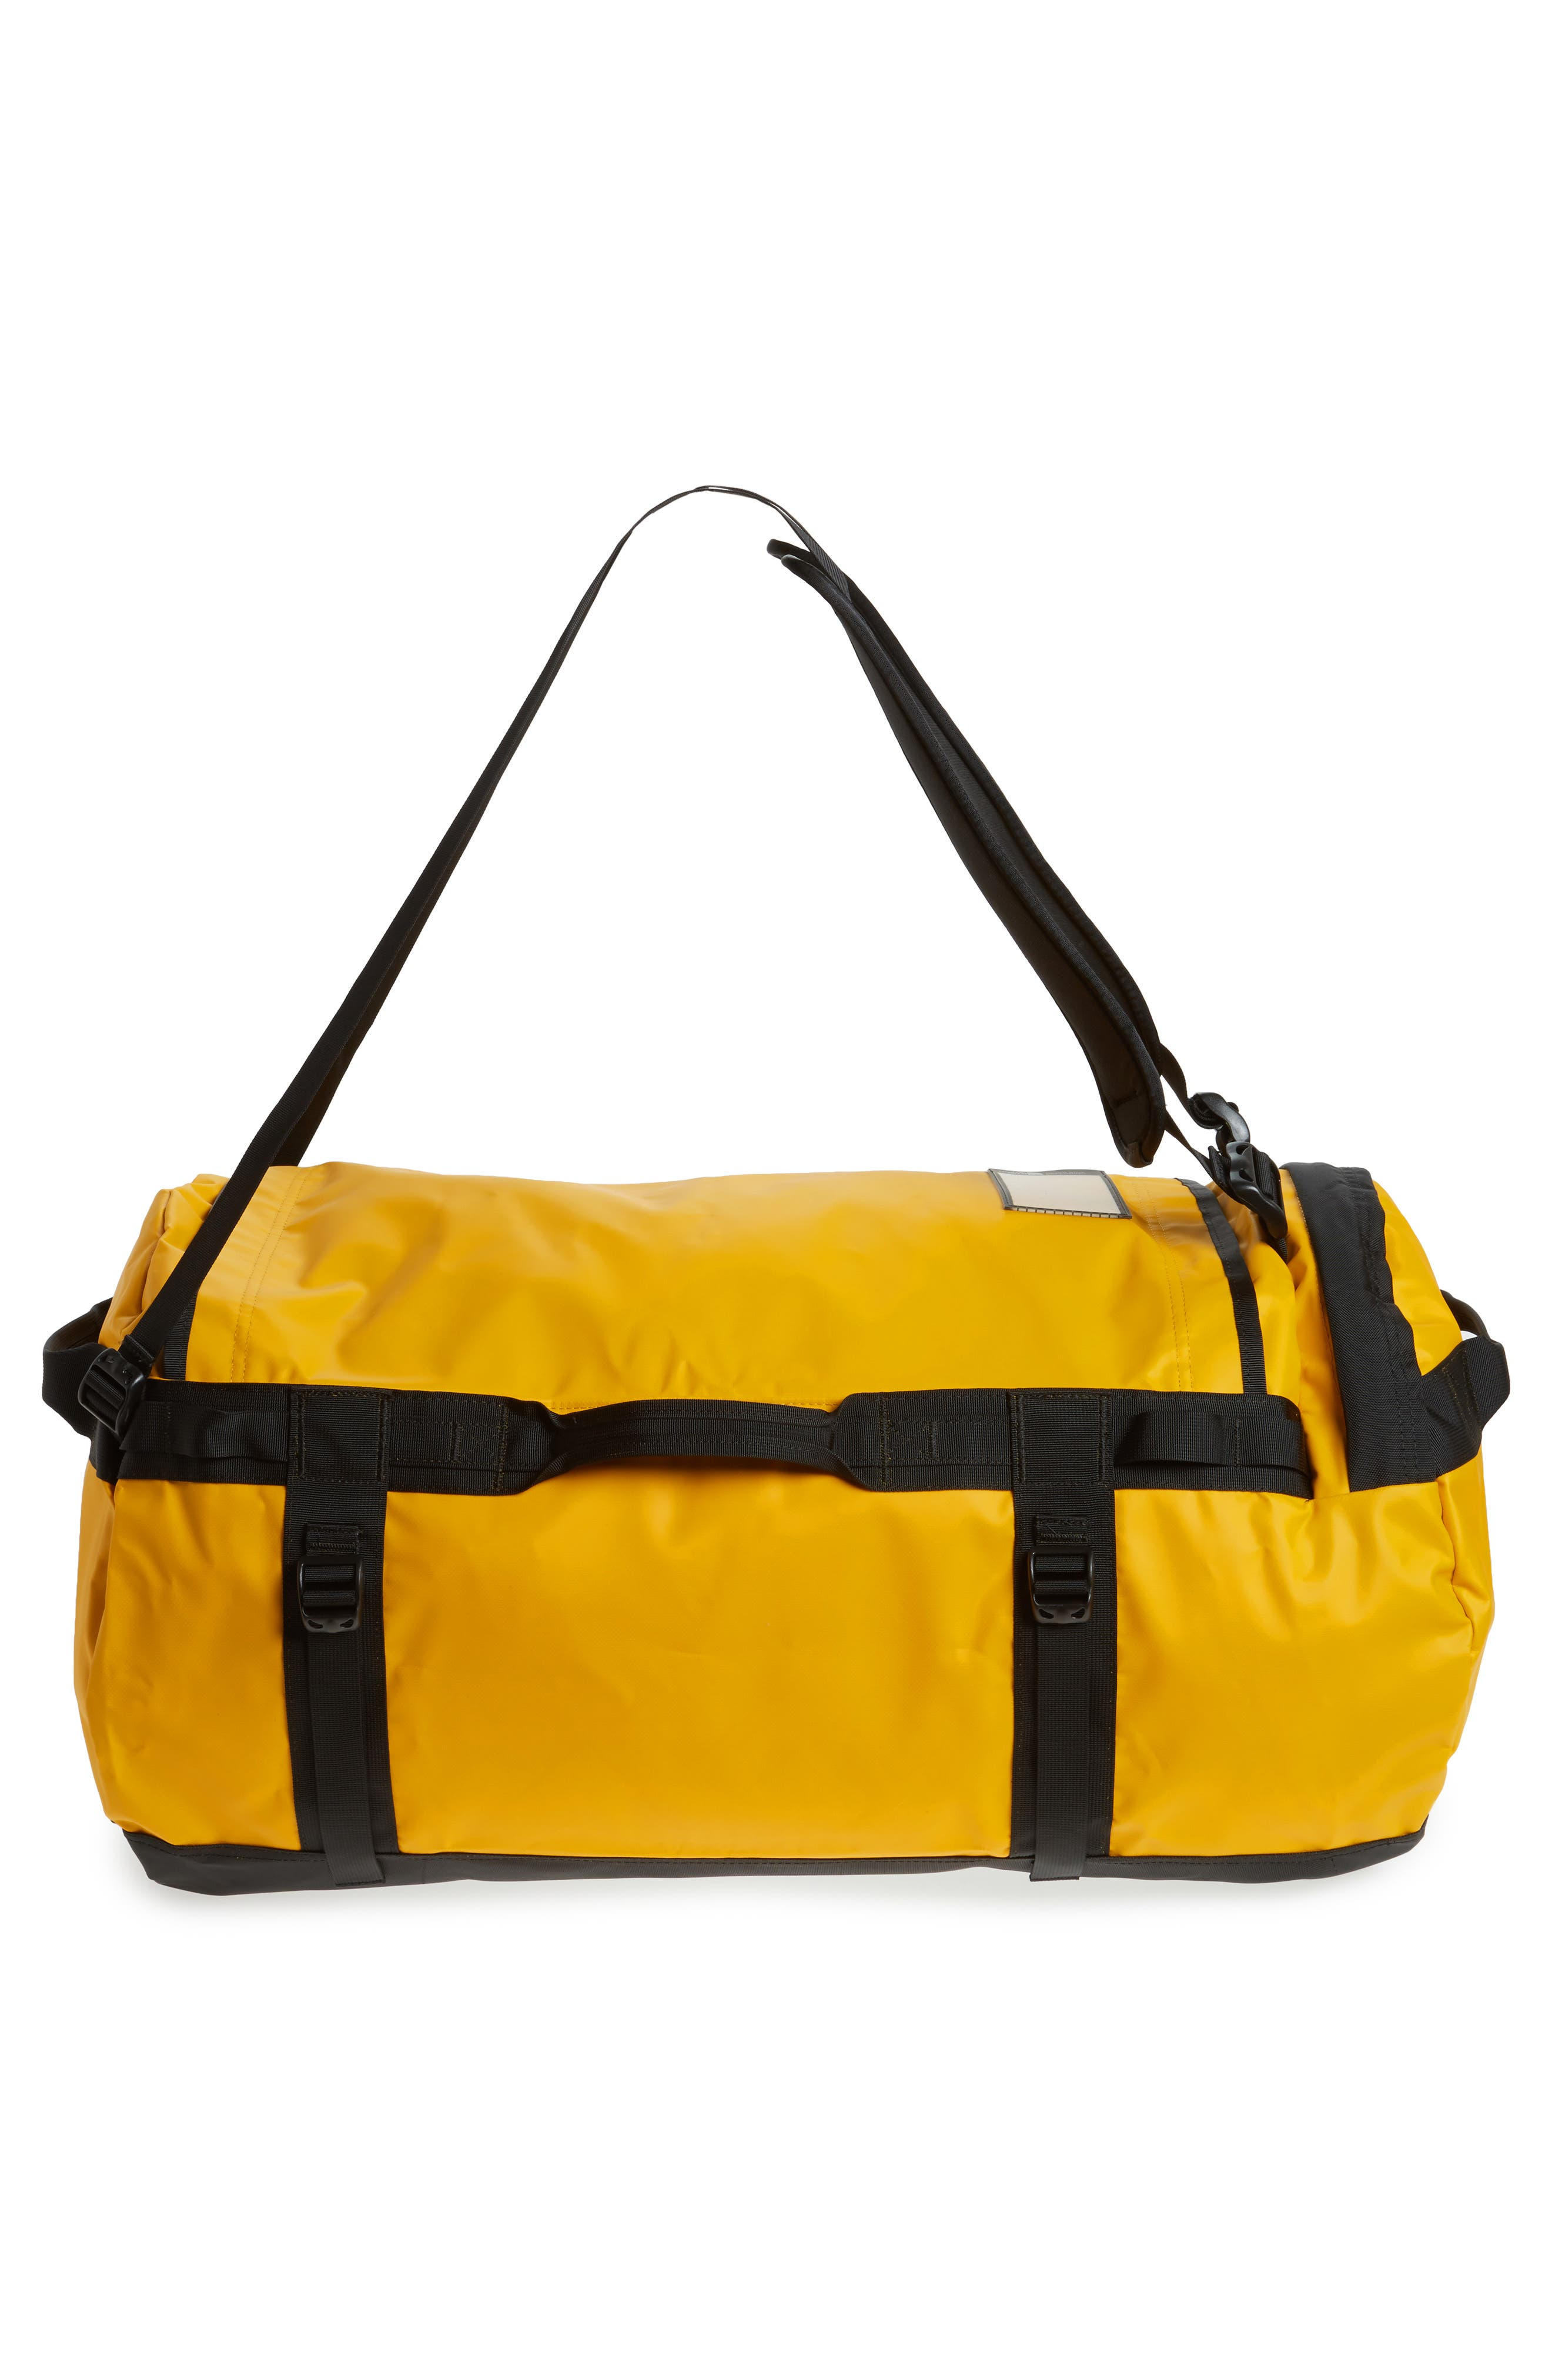 Alternate Image 3  - The North Face 'Base Camp - Large' Duffel Bag